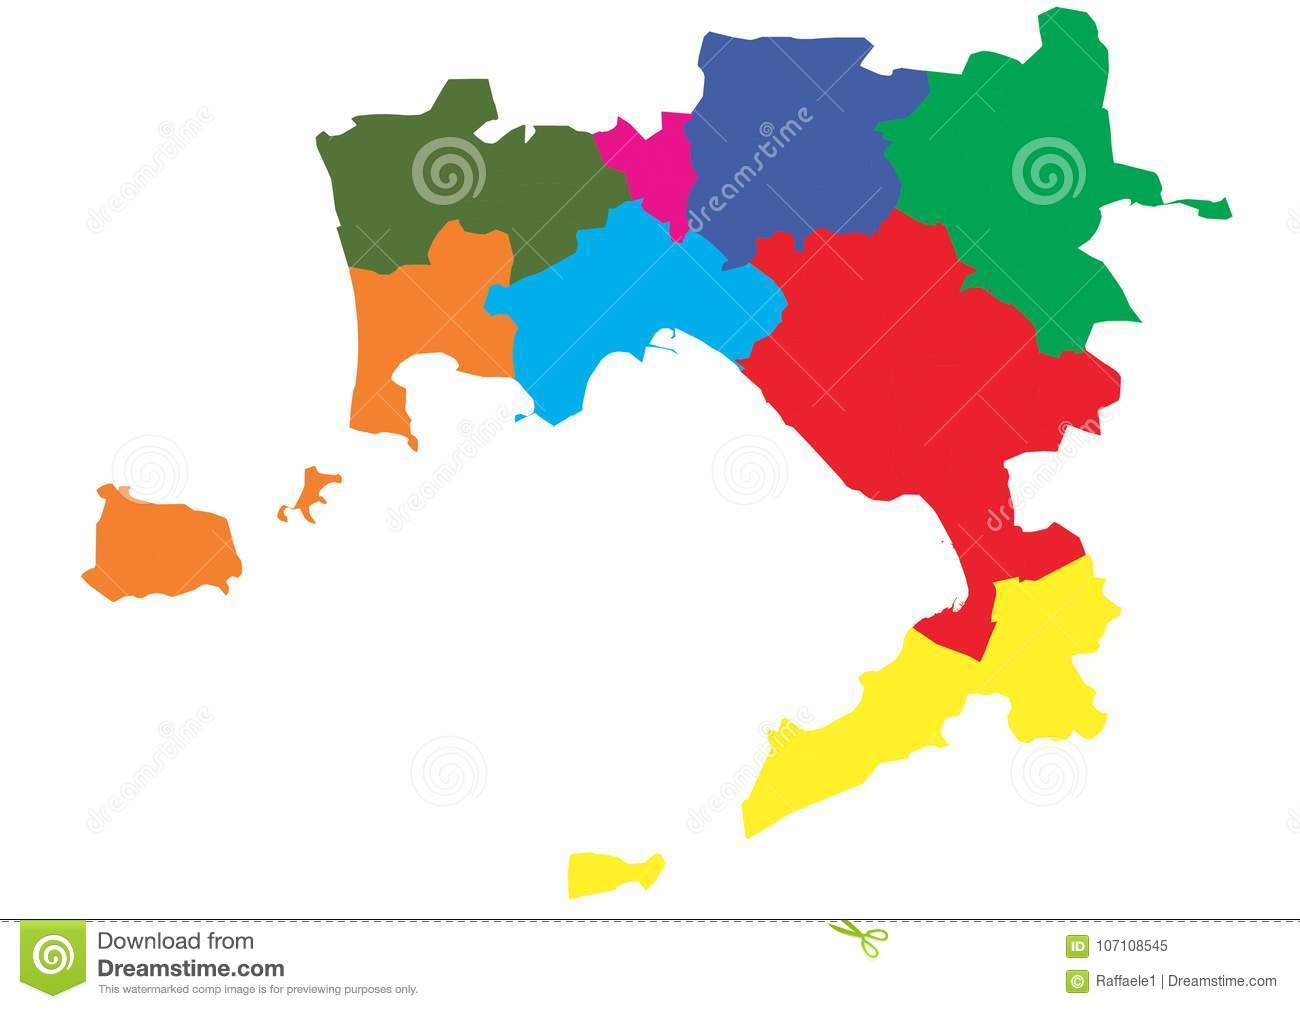 Areas Of Italy Map.Vector Map Of The Province Of Naples Divided By Areas Stock Vector